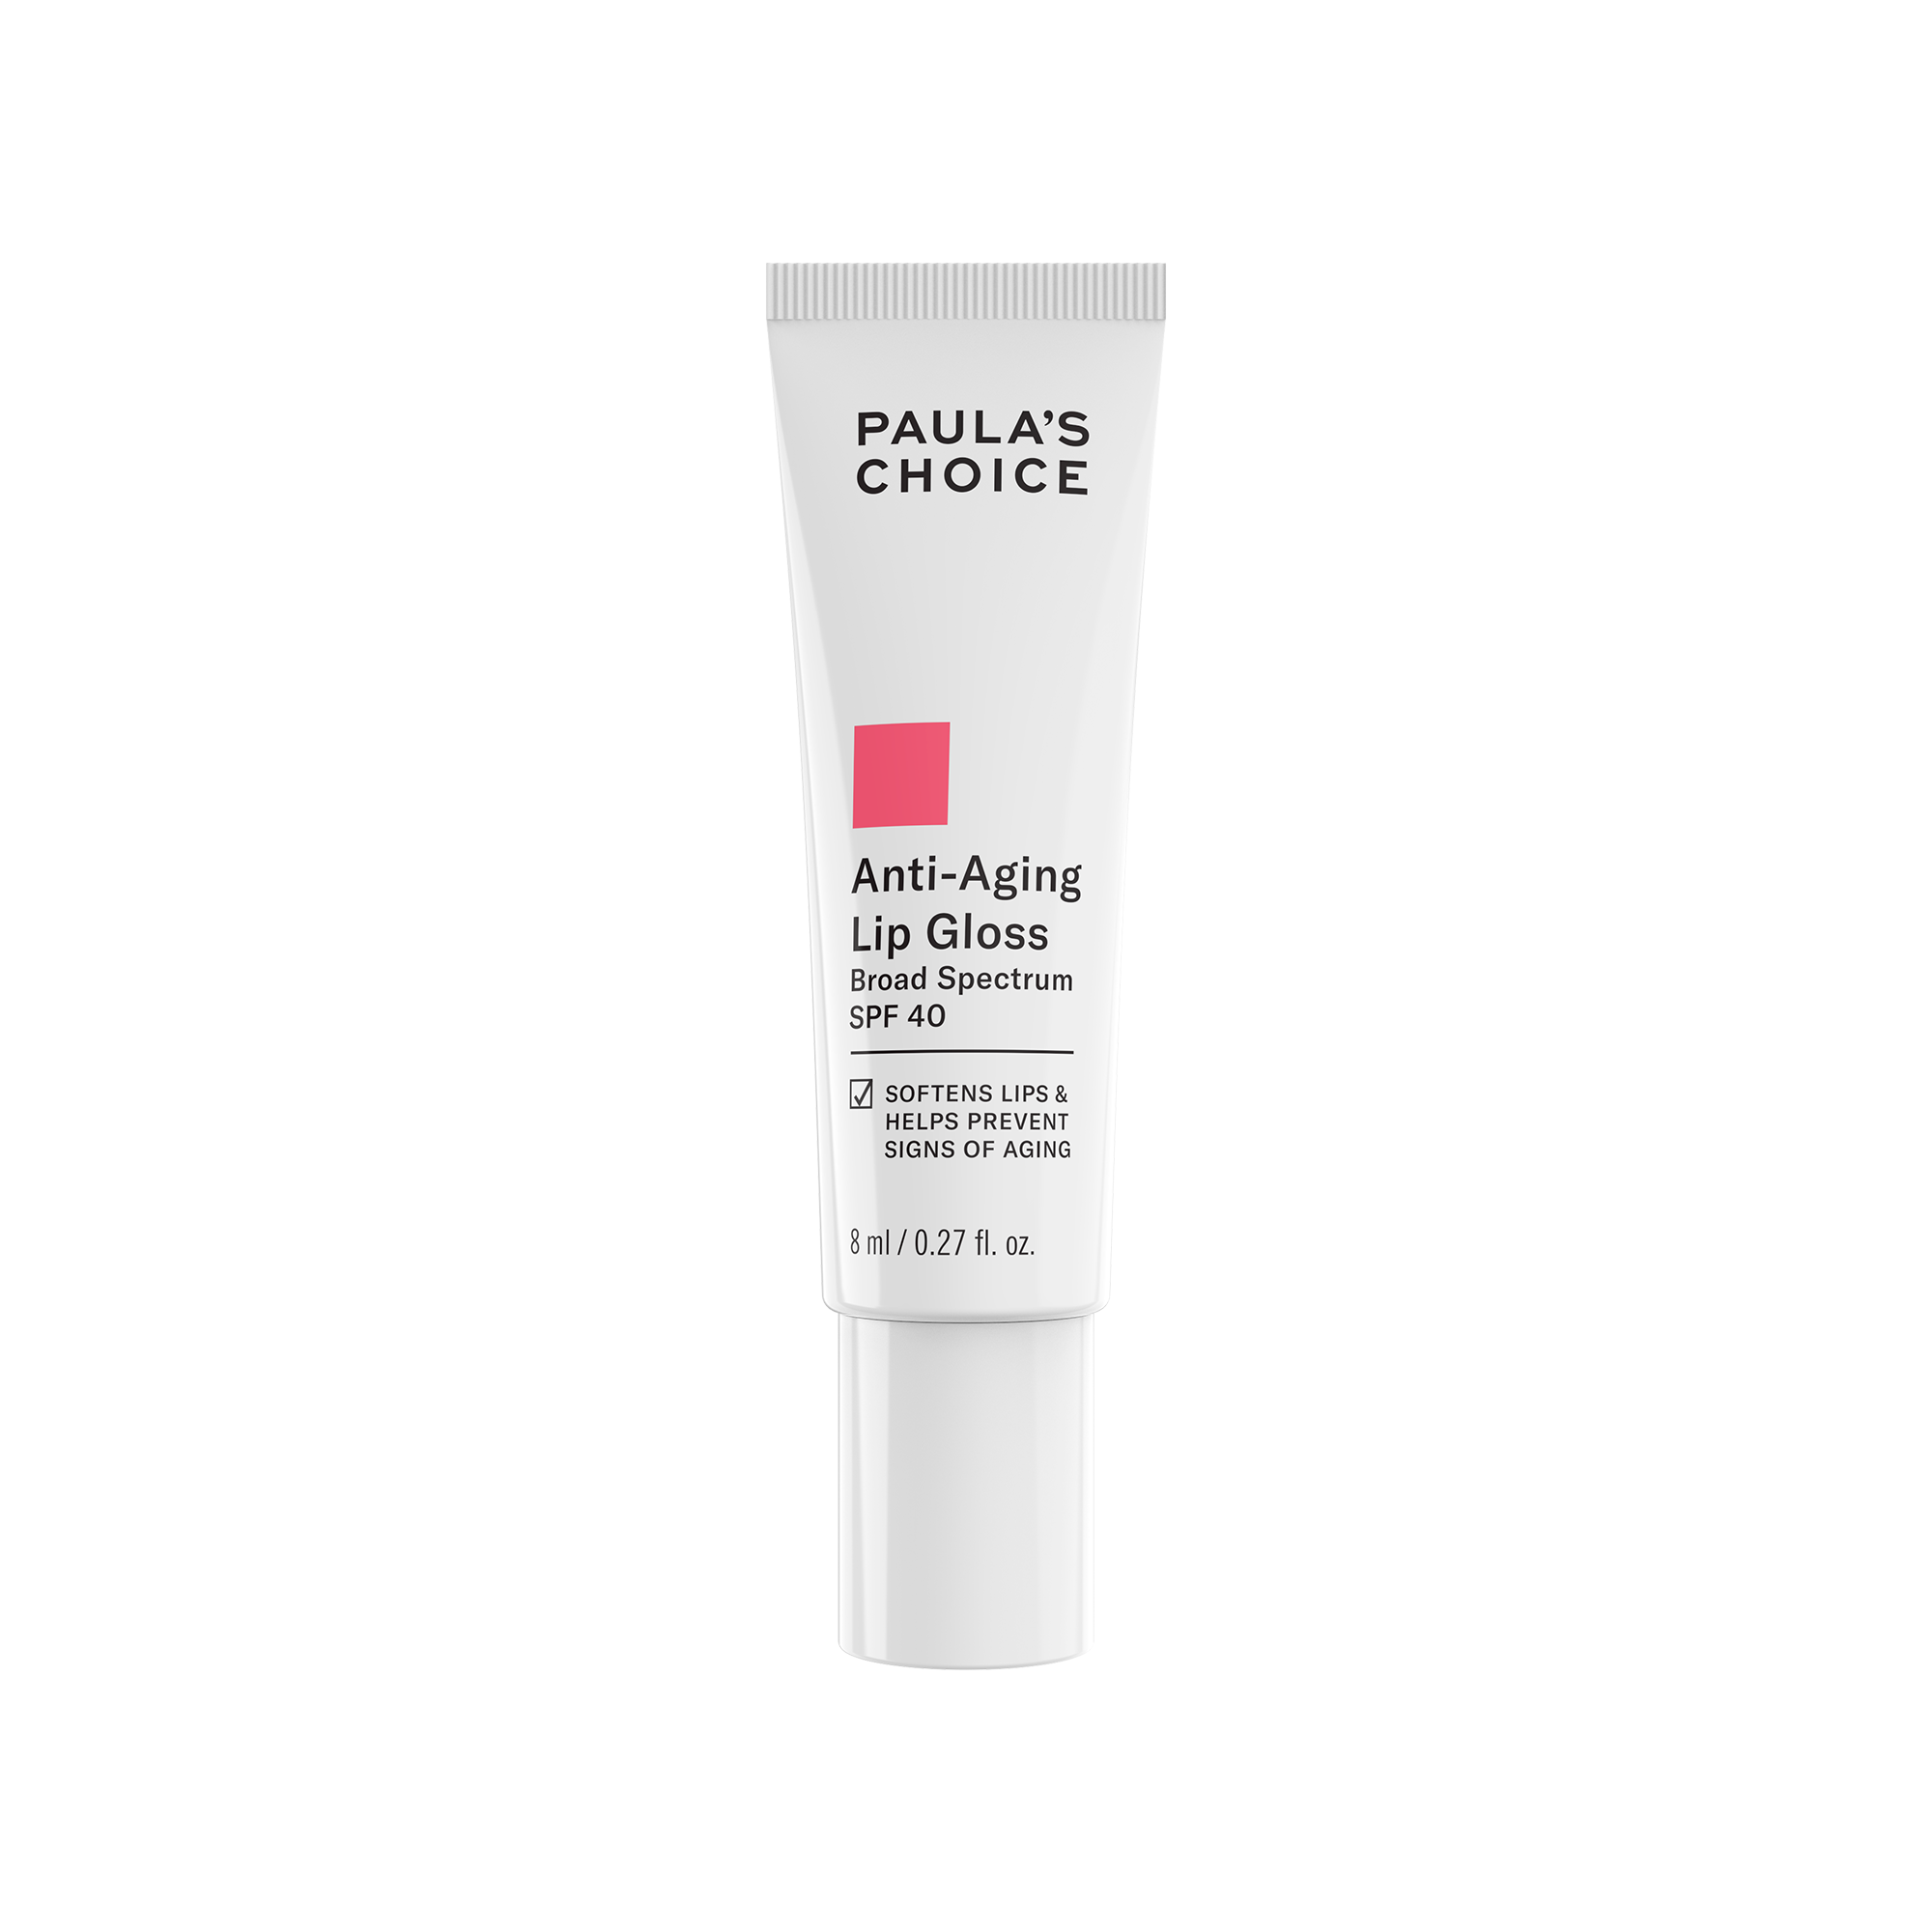 RESIST Anti-Aging Lip Gloss SPF 40 | Paula's Choice